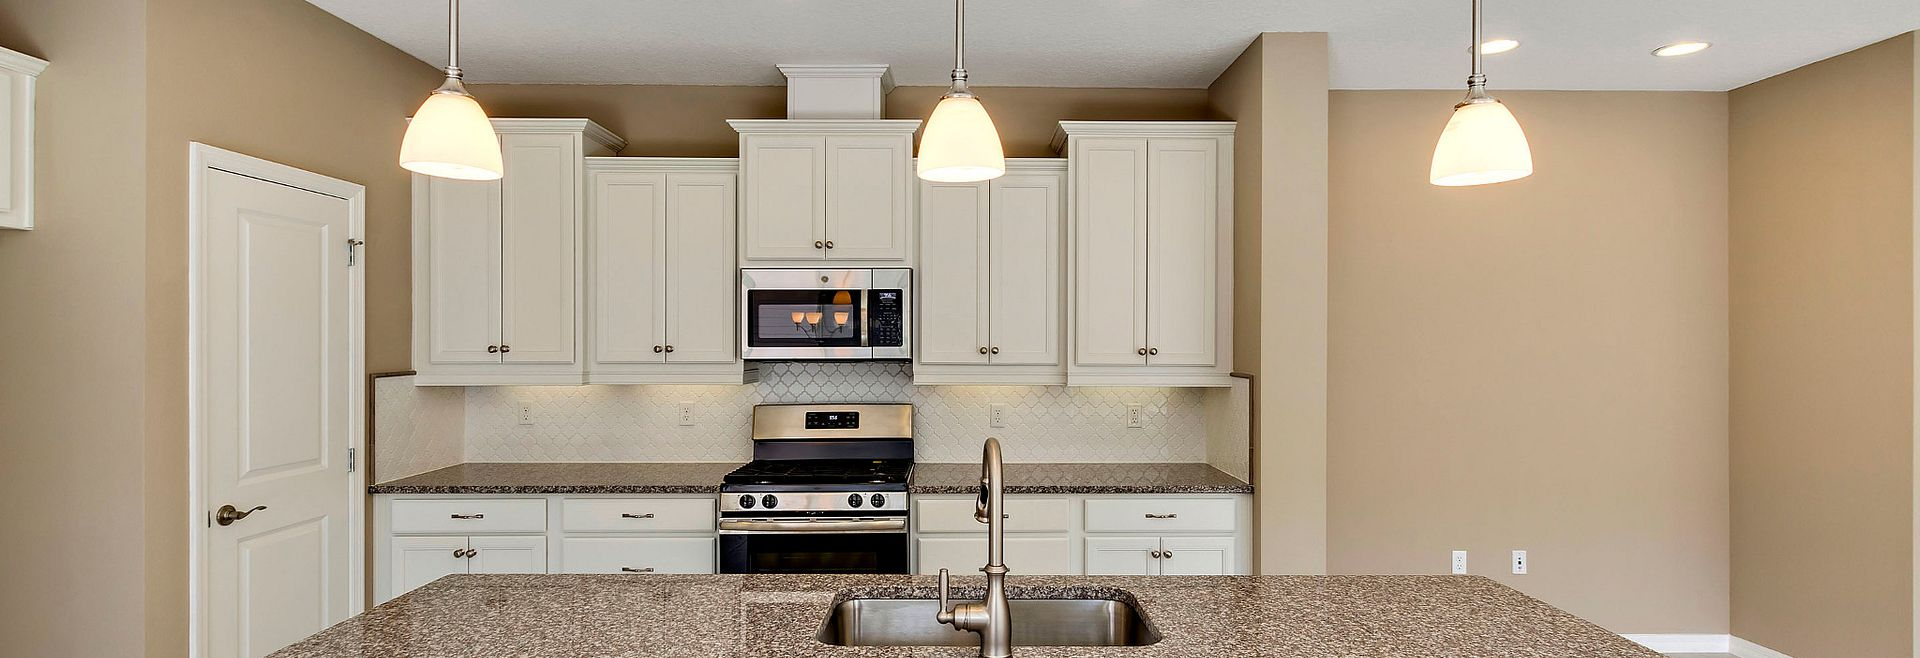 Trilogy Orlando Amalfi Plan Quick Move In Home Kitche